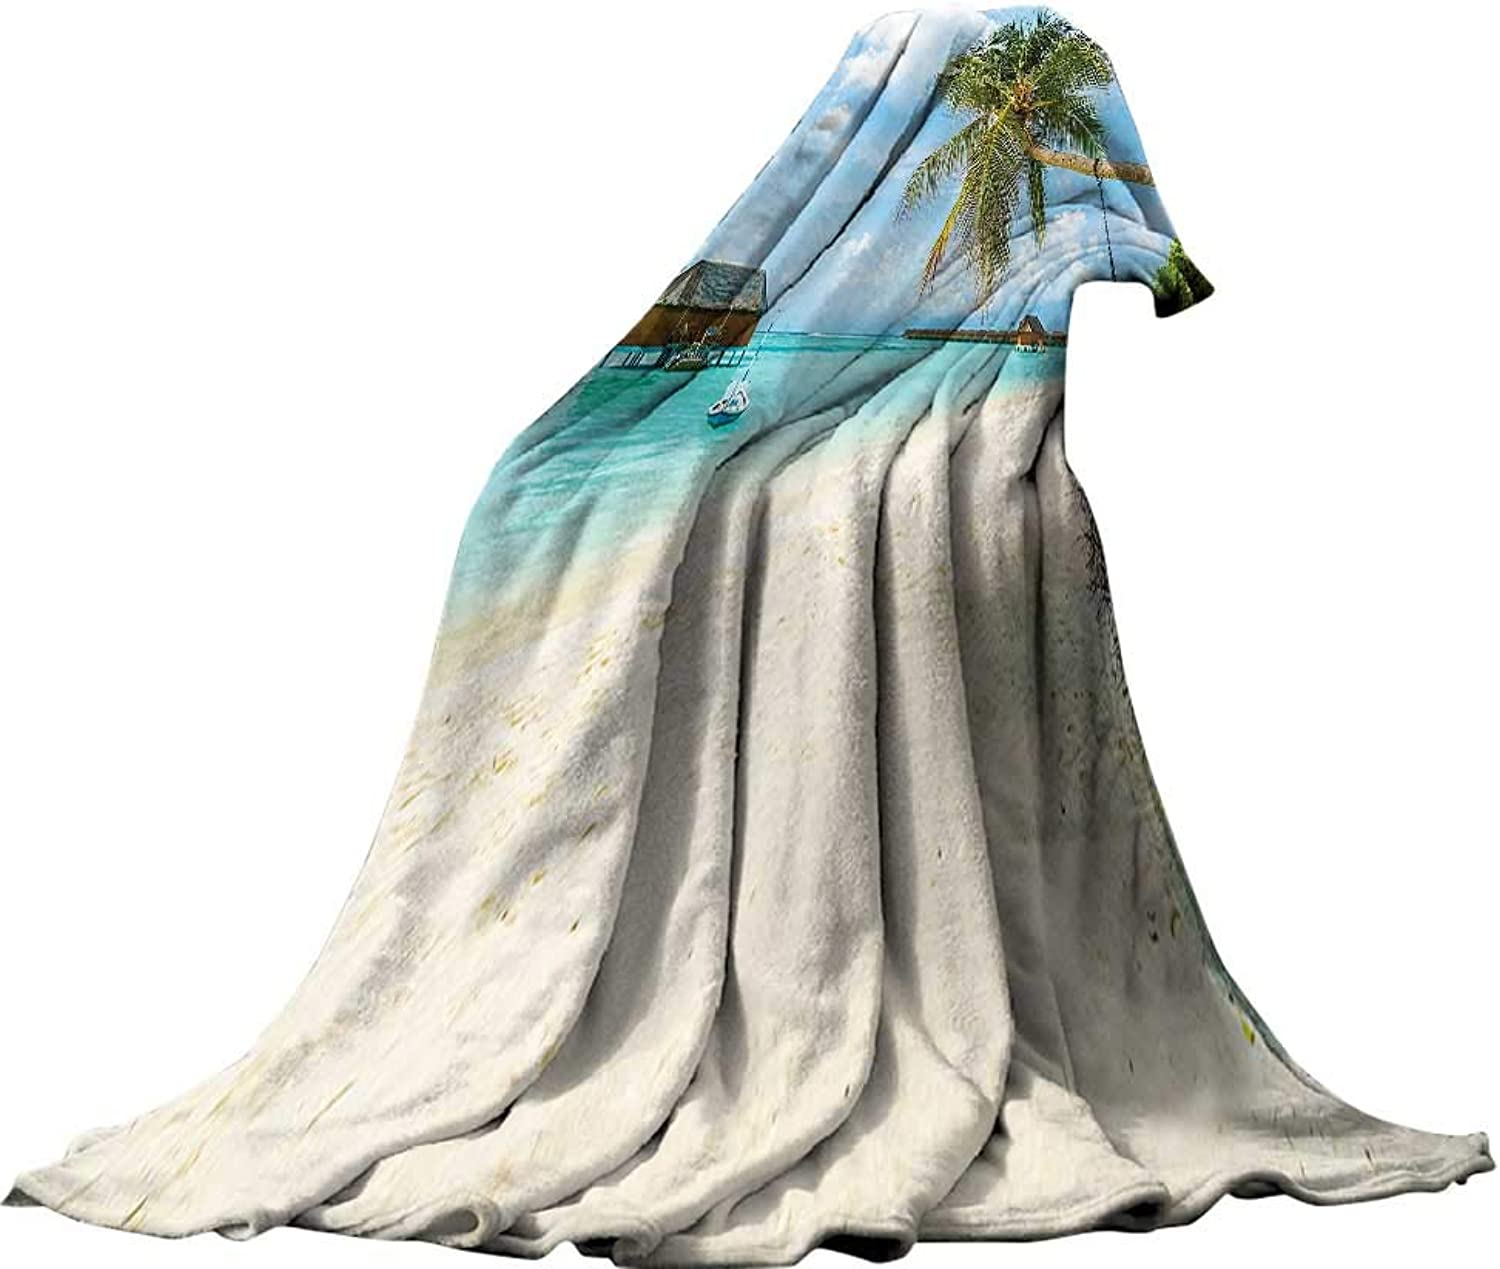 QINYAN-Home Super Soft Blanket (62 x60 ) Summer Quilt Comforter Ocean Decor Exotic Beach in The Maldives with Crystal Waters and Palm Trees on The Sand Tropical Decor ES Multicolor.